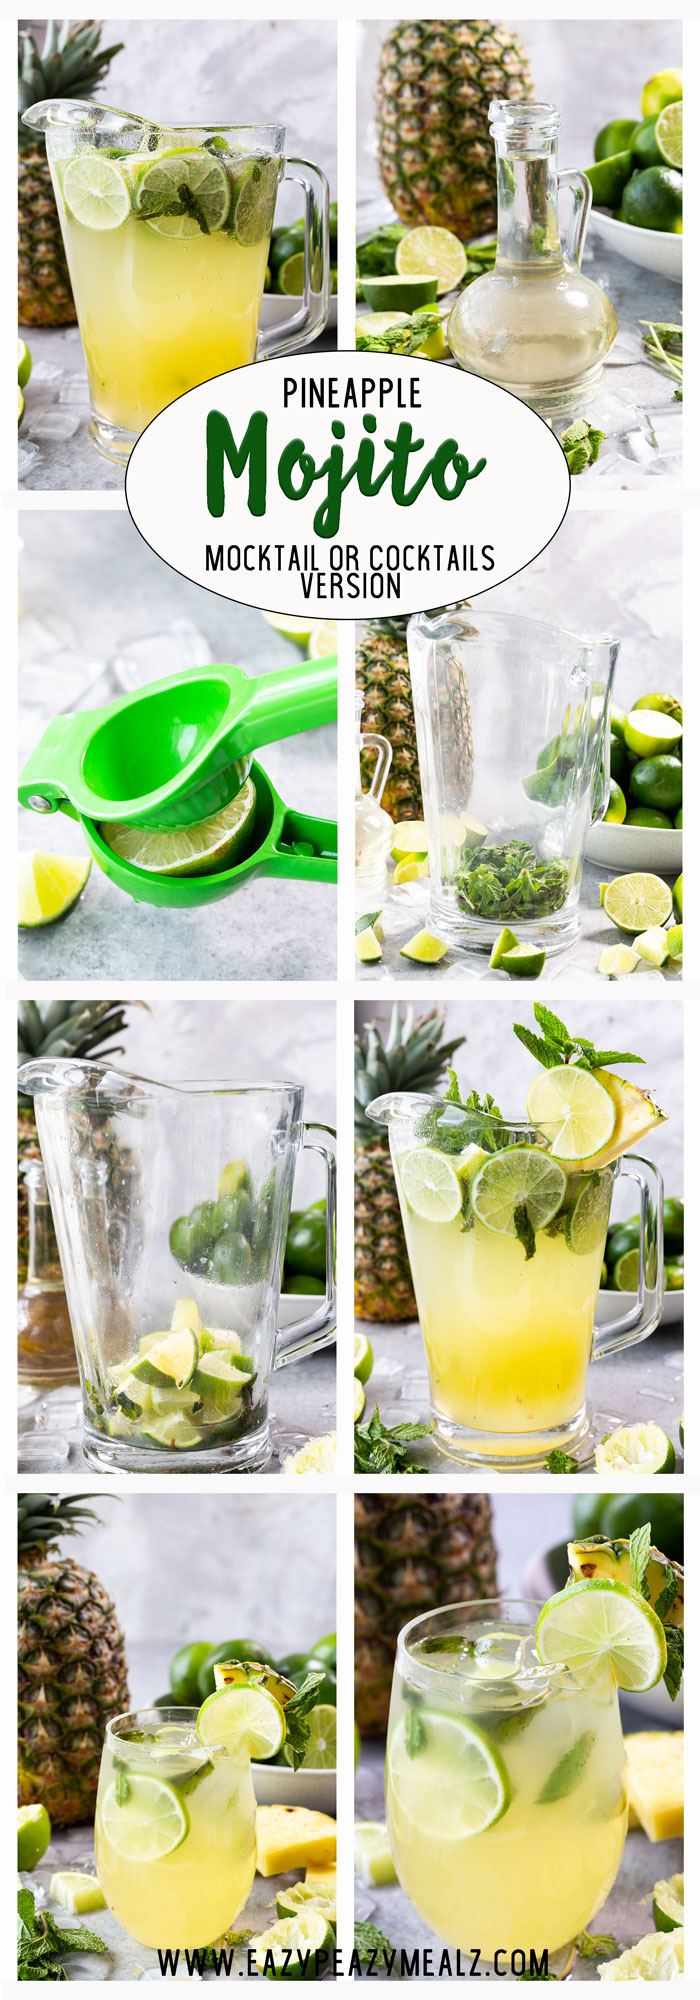 Pineapple mojito, a fun twist on a classic mojito. Easy  to make and oh so delicious.